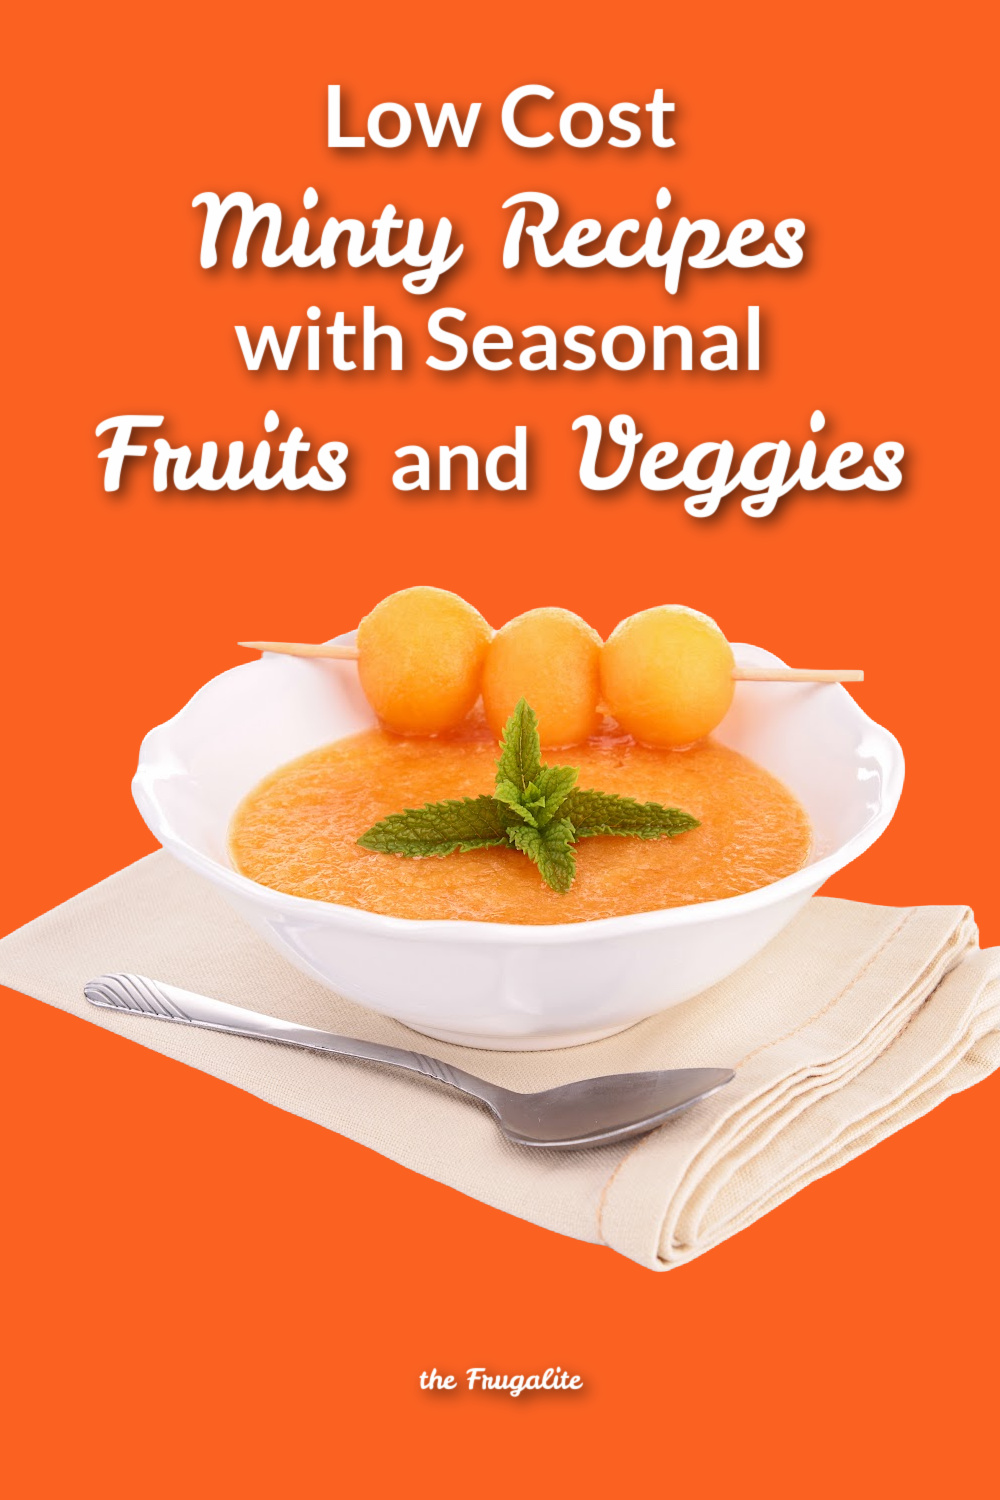 Low Cost Minty Recipes with Seasonal Fruits and Veggies